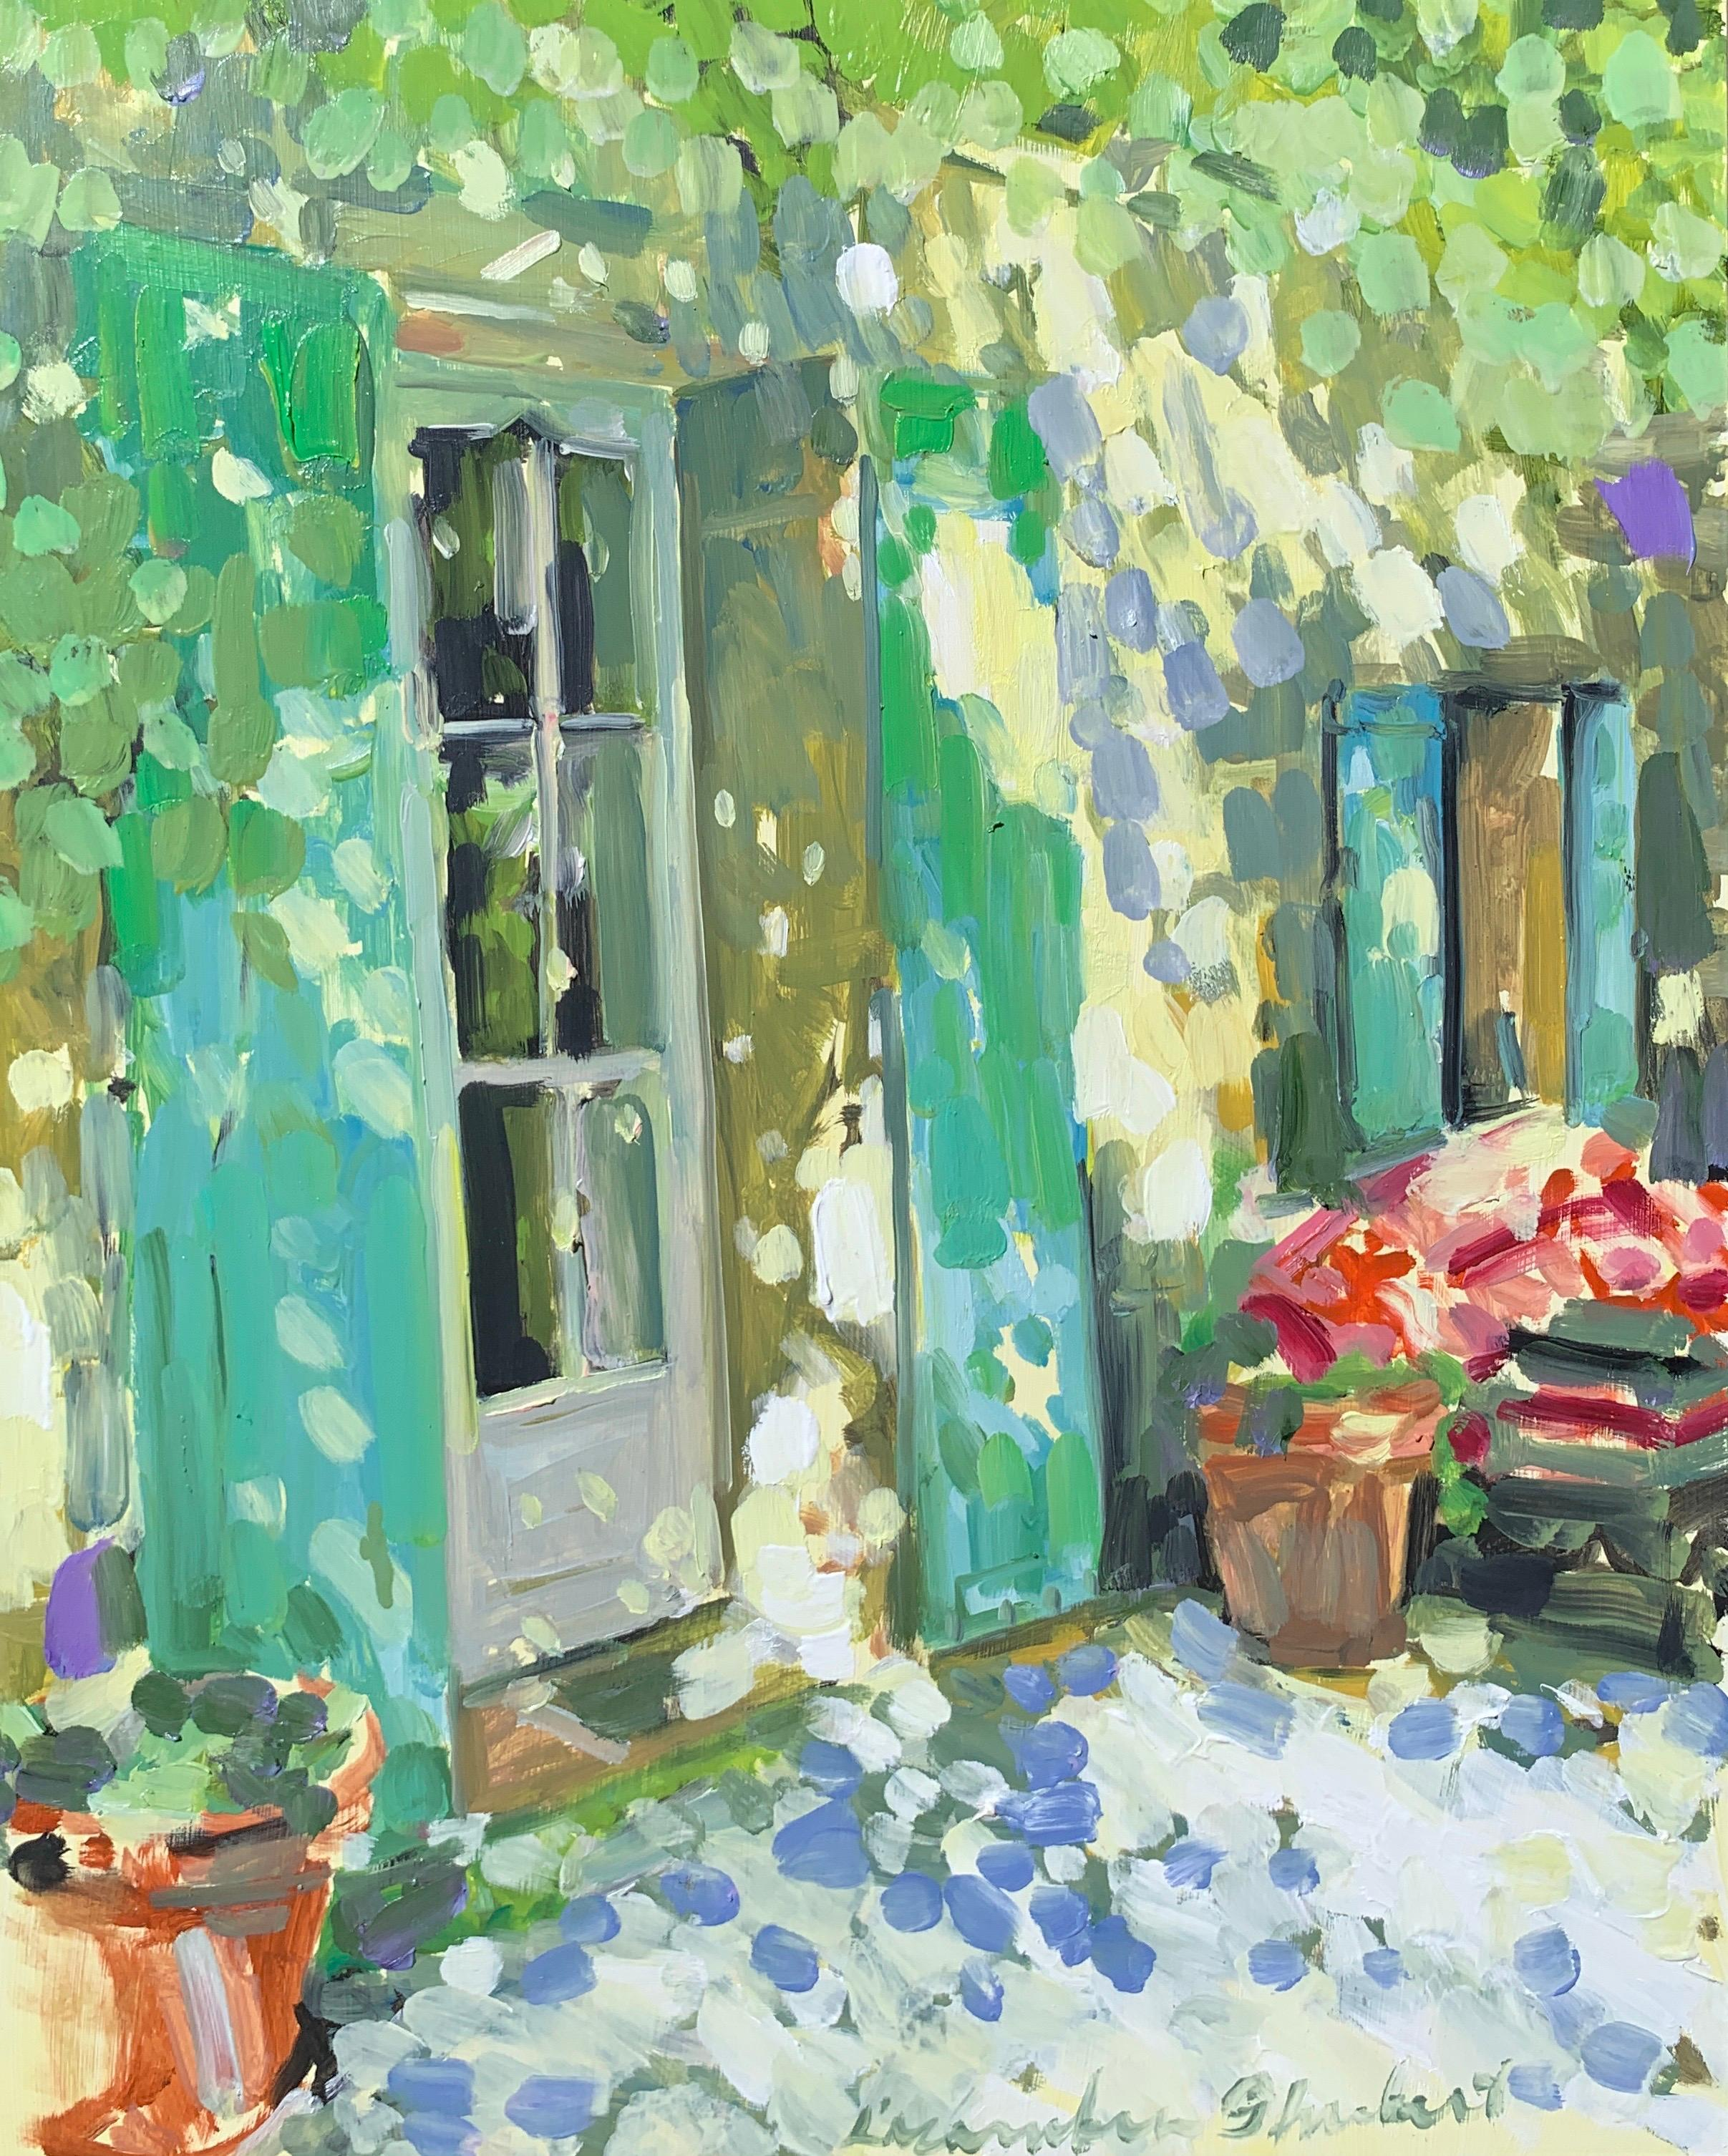 Blue and Green Shutters by Laura Shubert, Petite Oil on Board Facade Painting